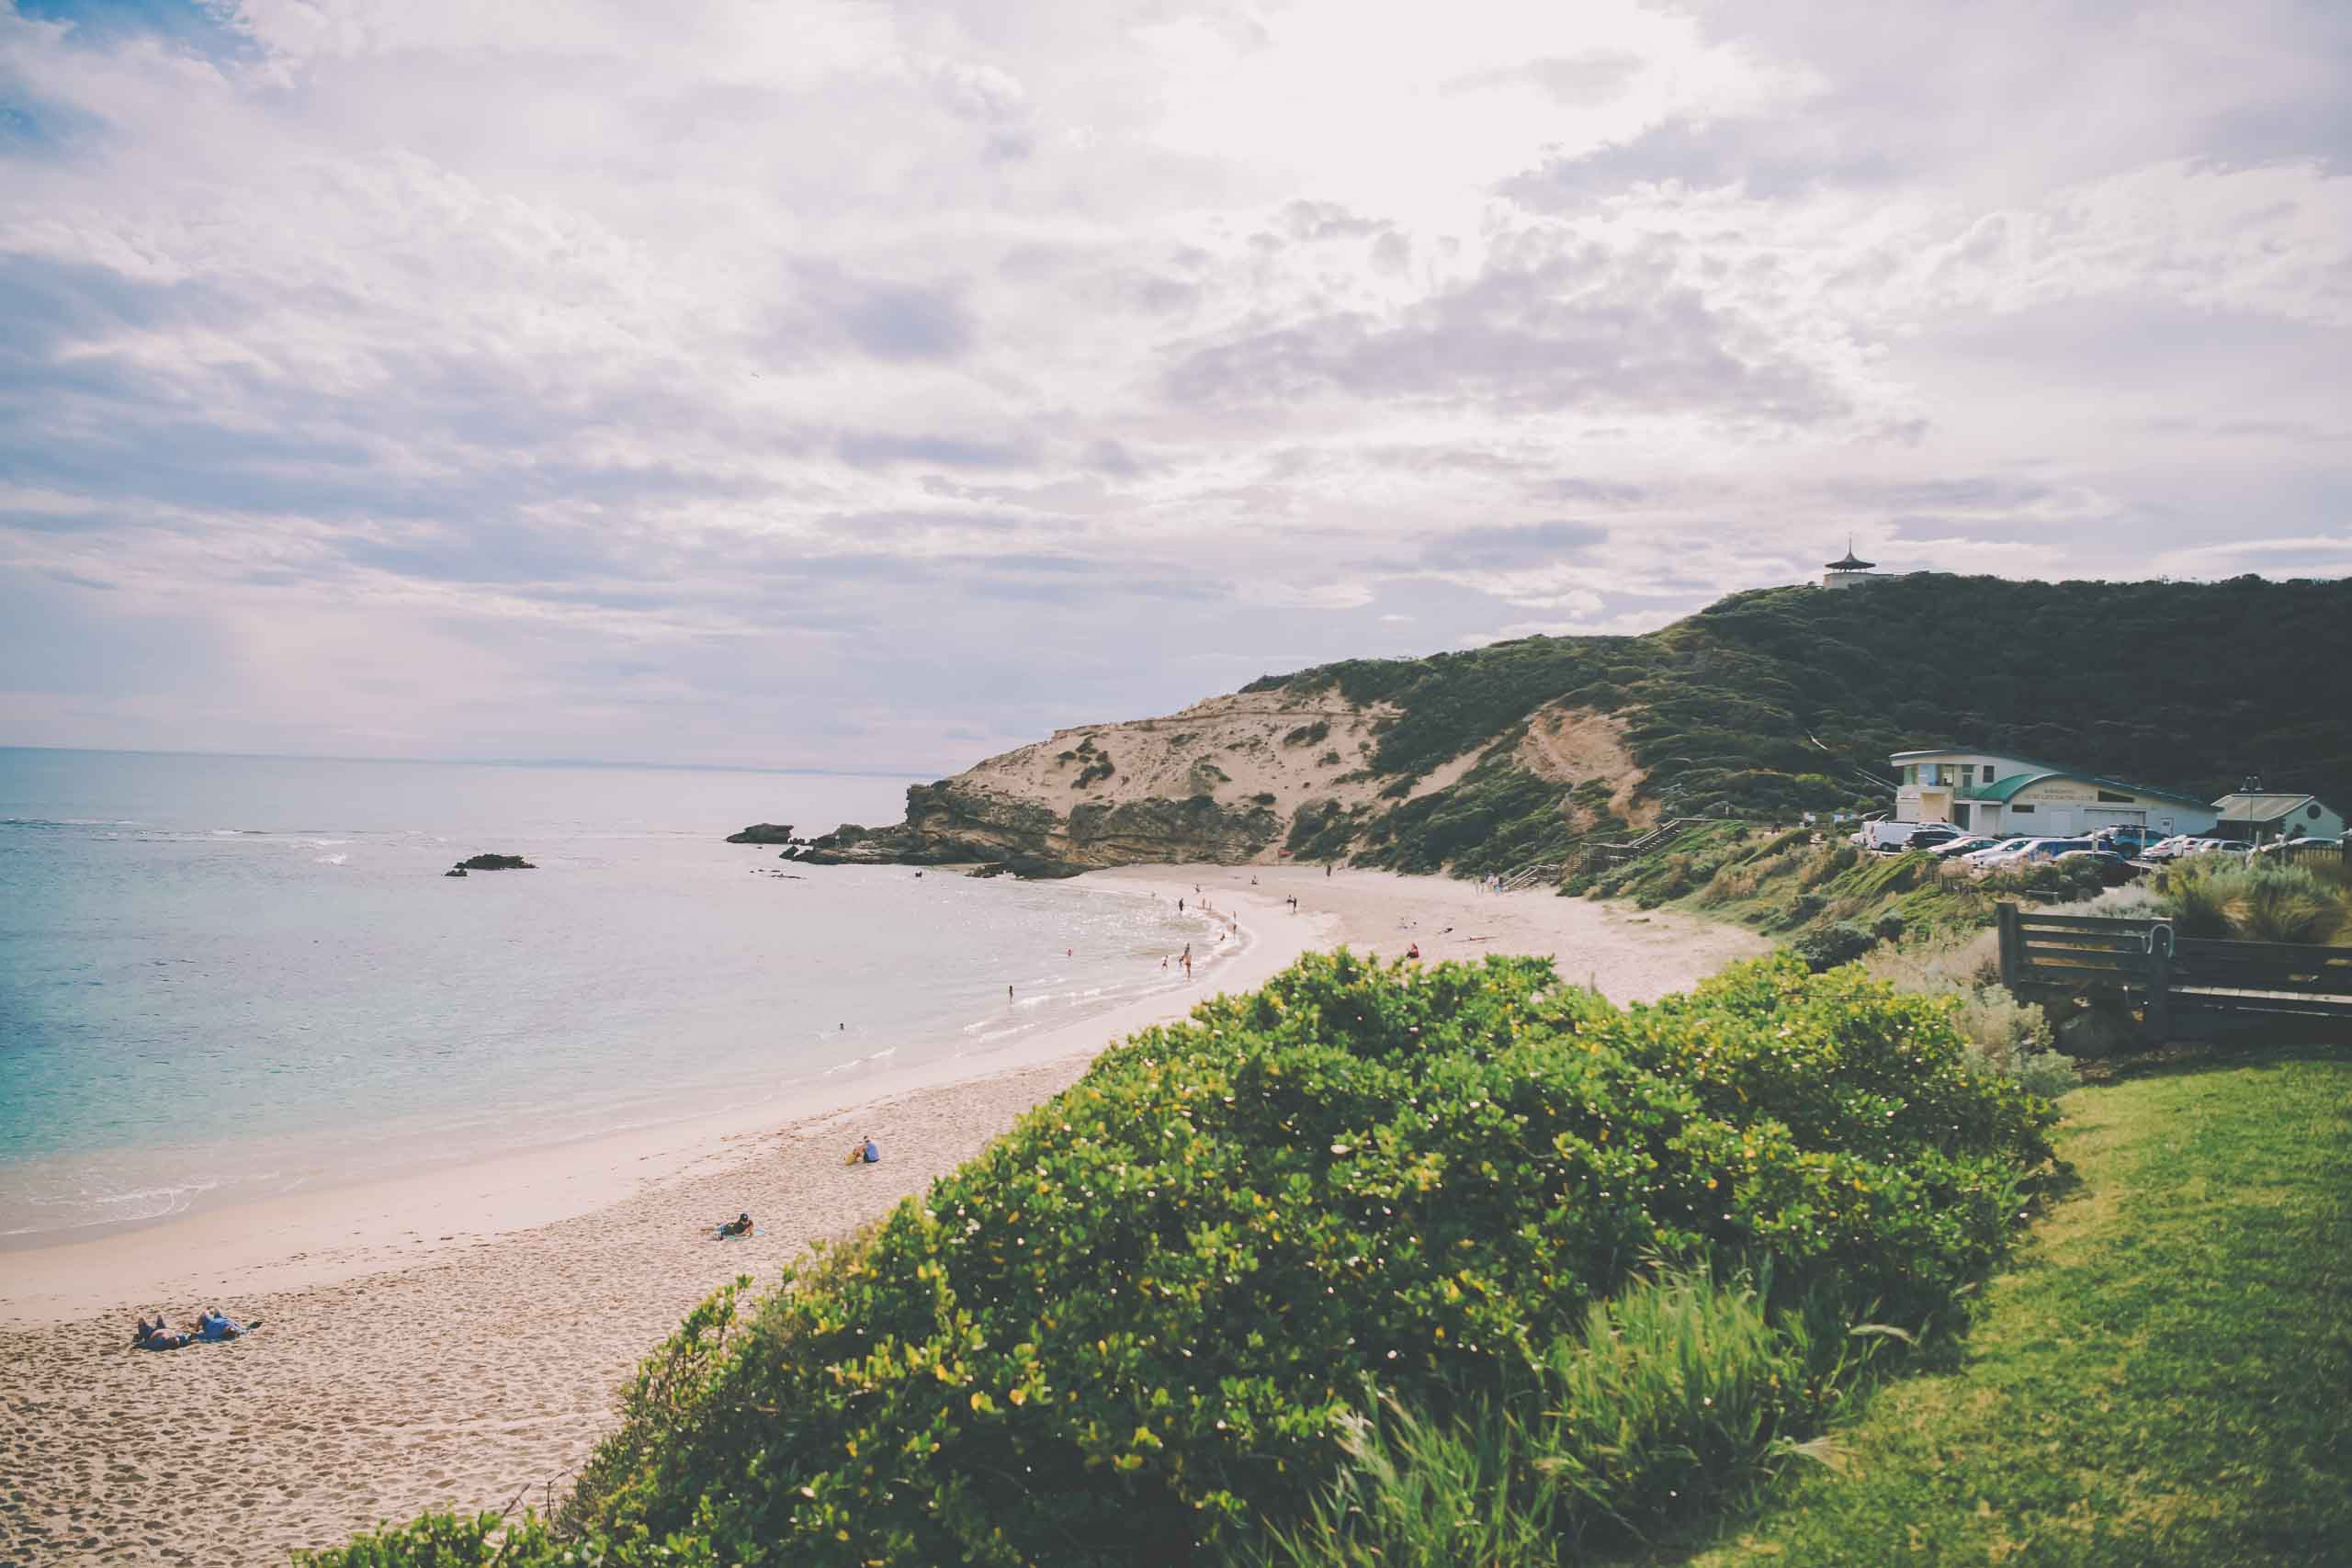 A picture of Sorrento beach, a great place for wedding photography